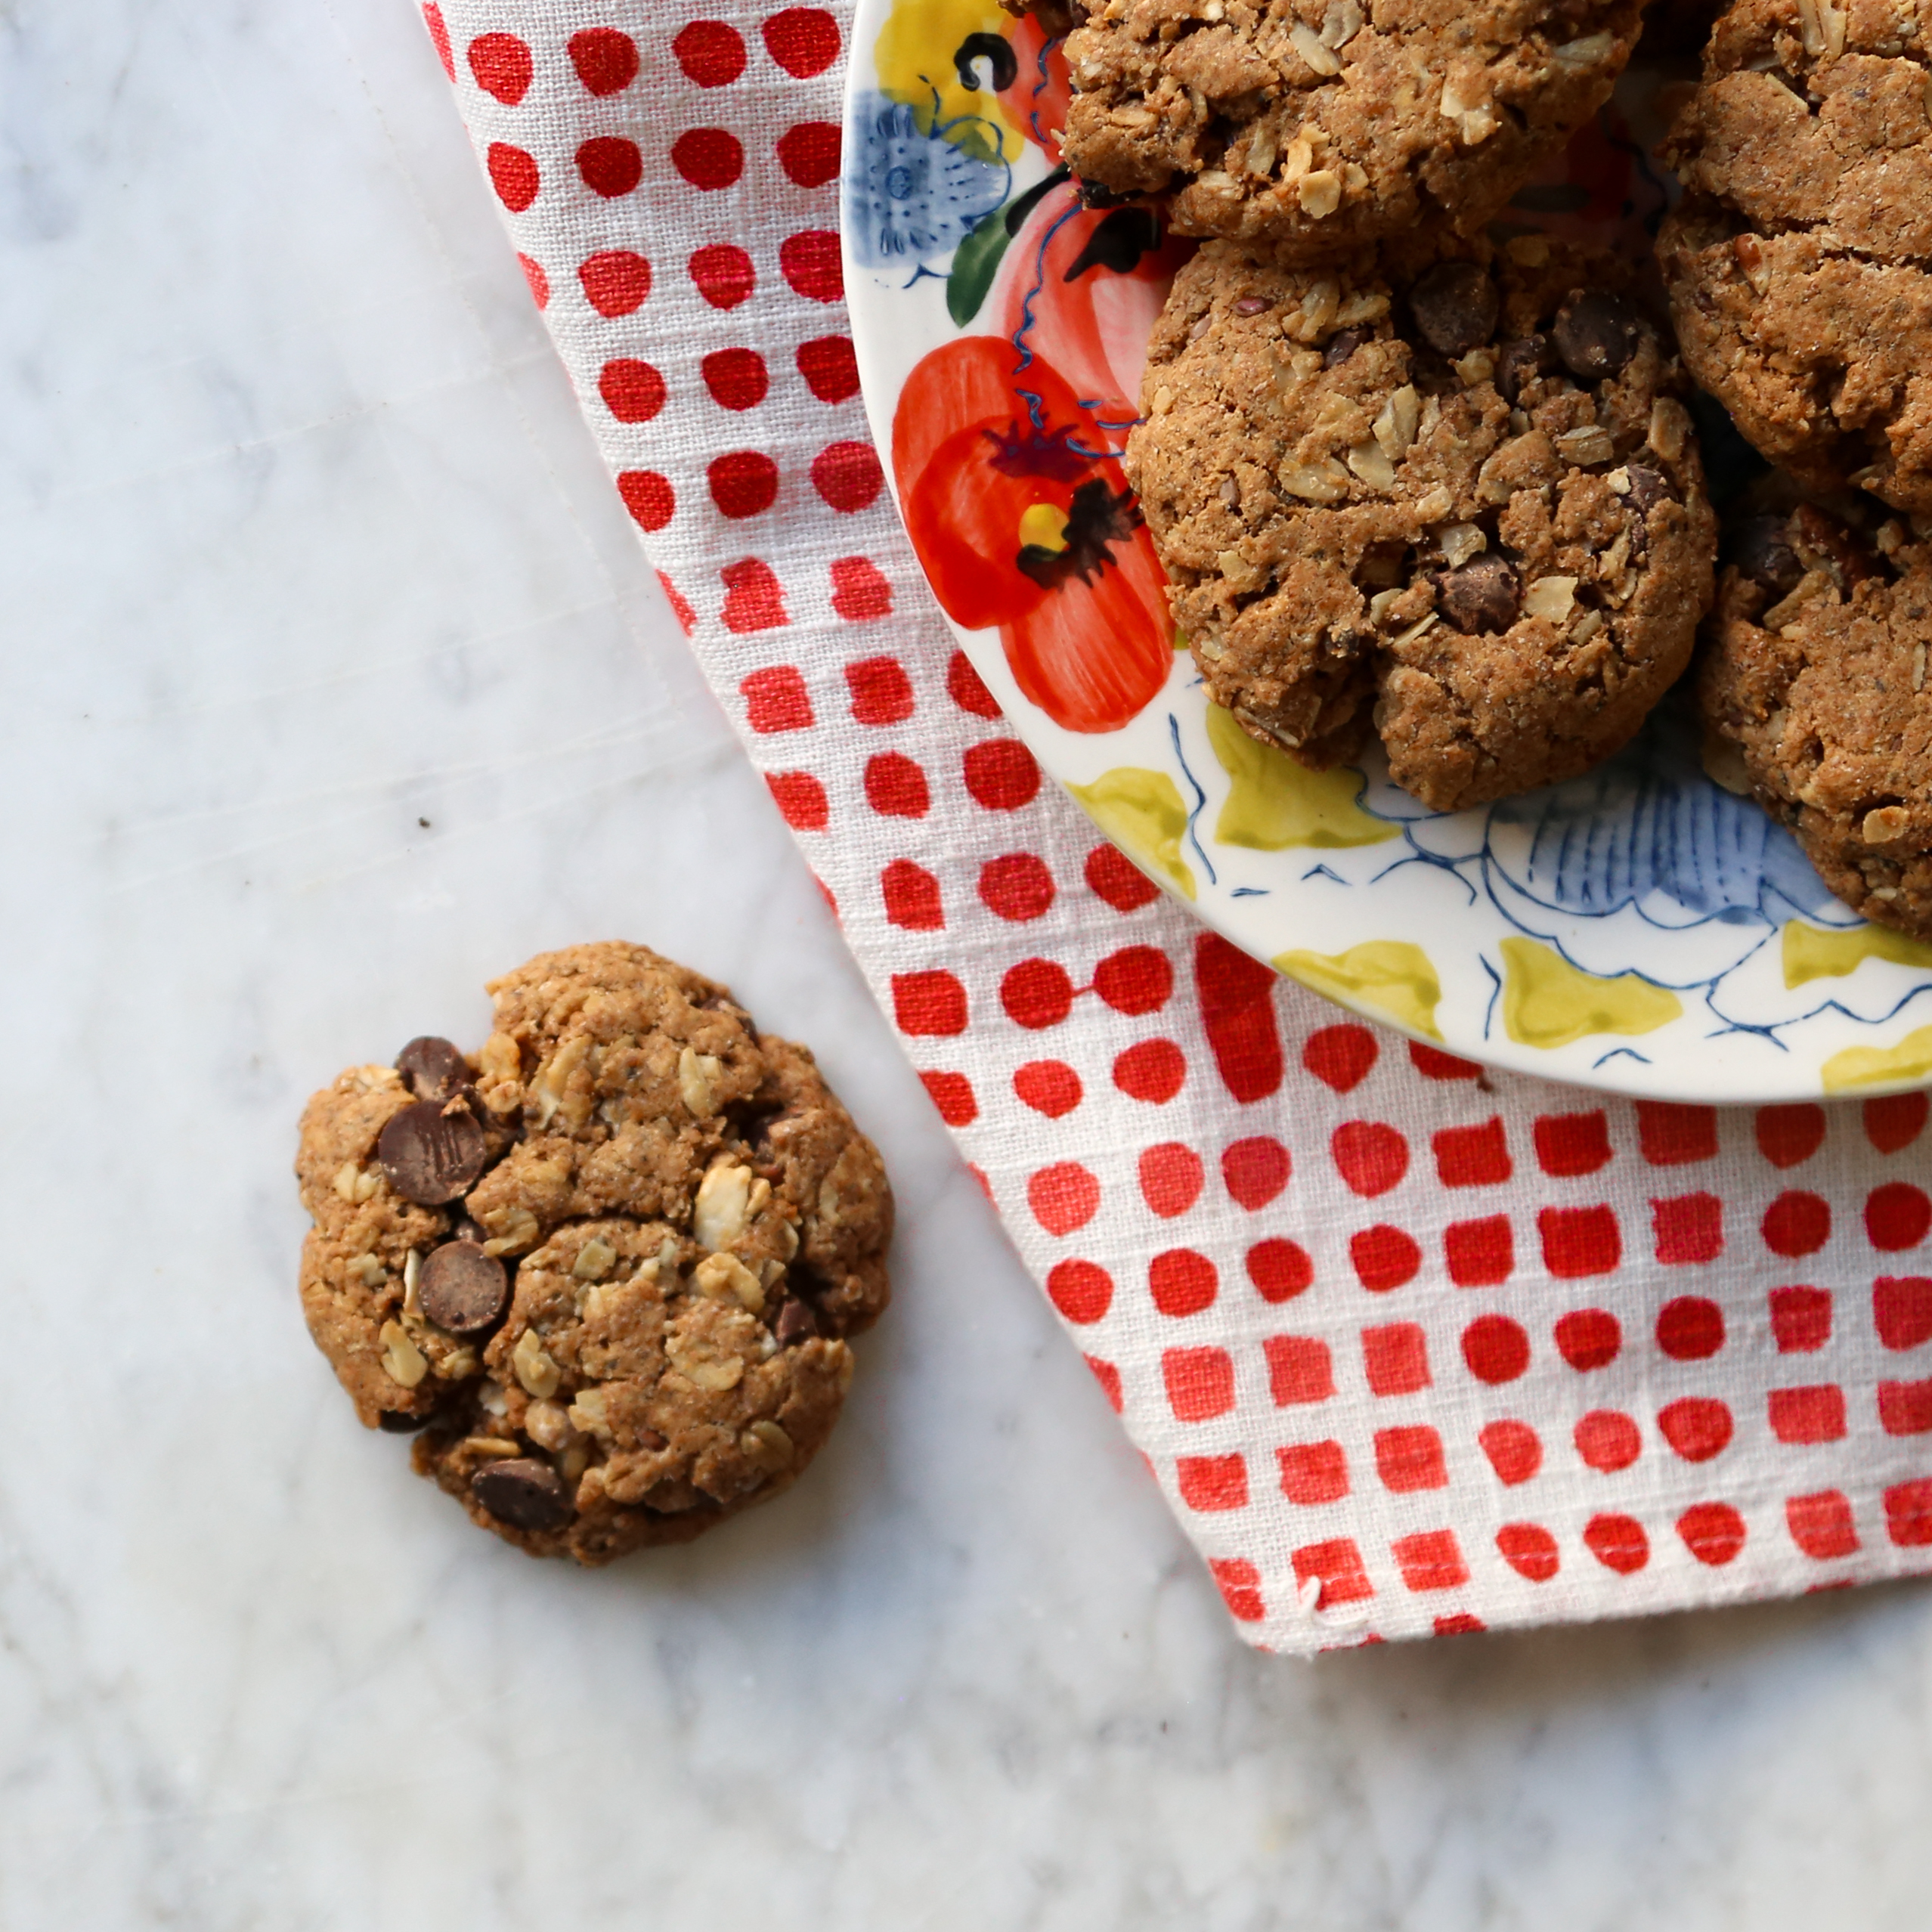 Chocolate Chip Muesli Cookies with Cherry and Pecan Recipe, vegan oatmeal, inmybowl.com